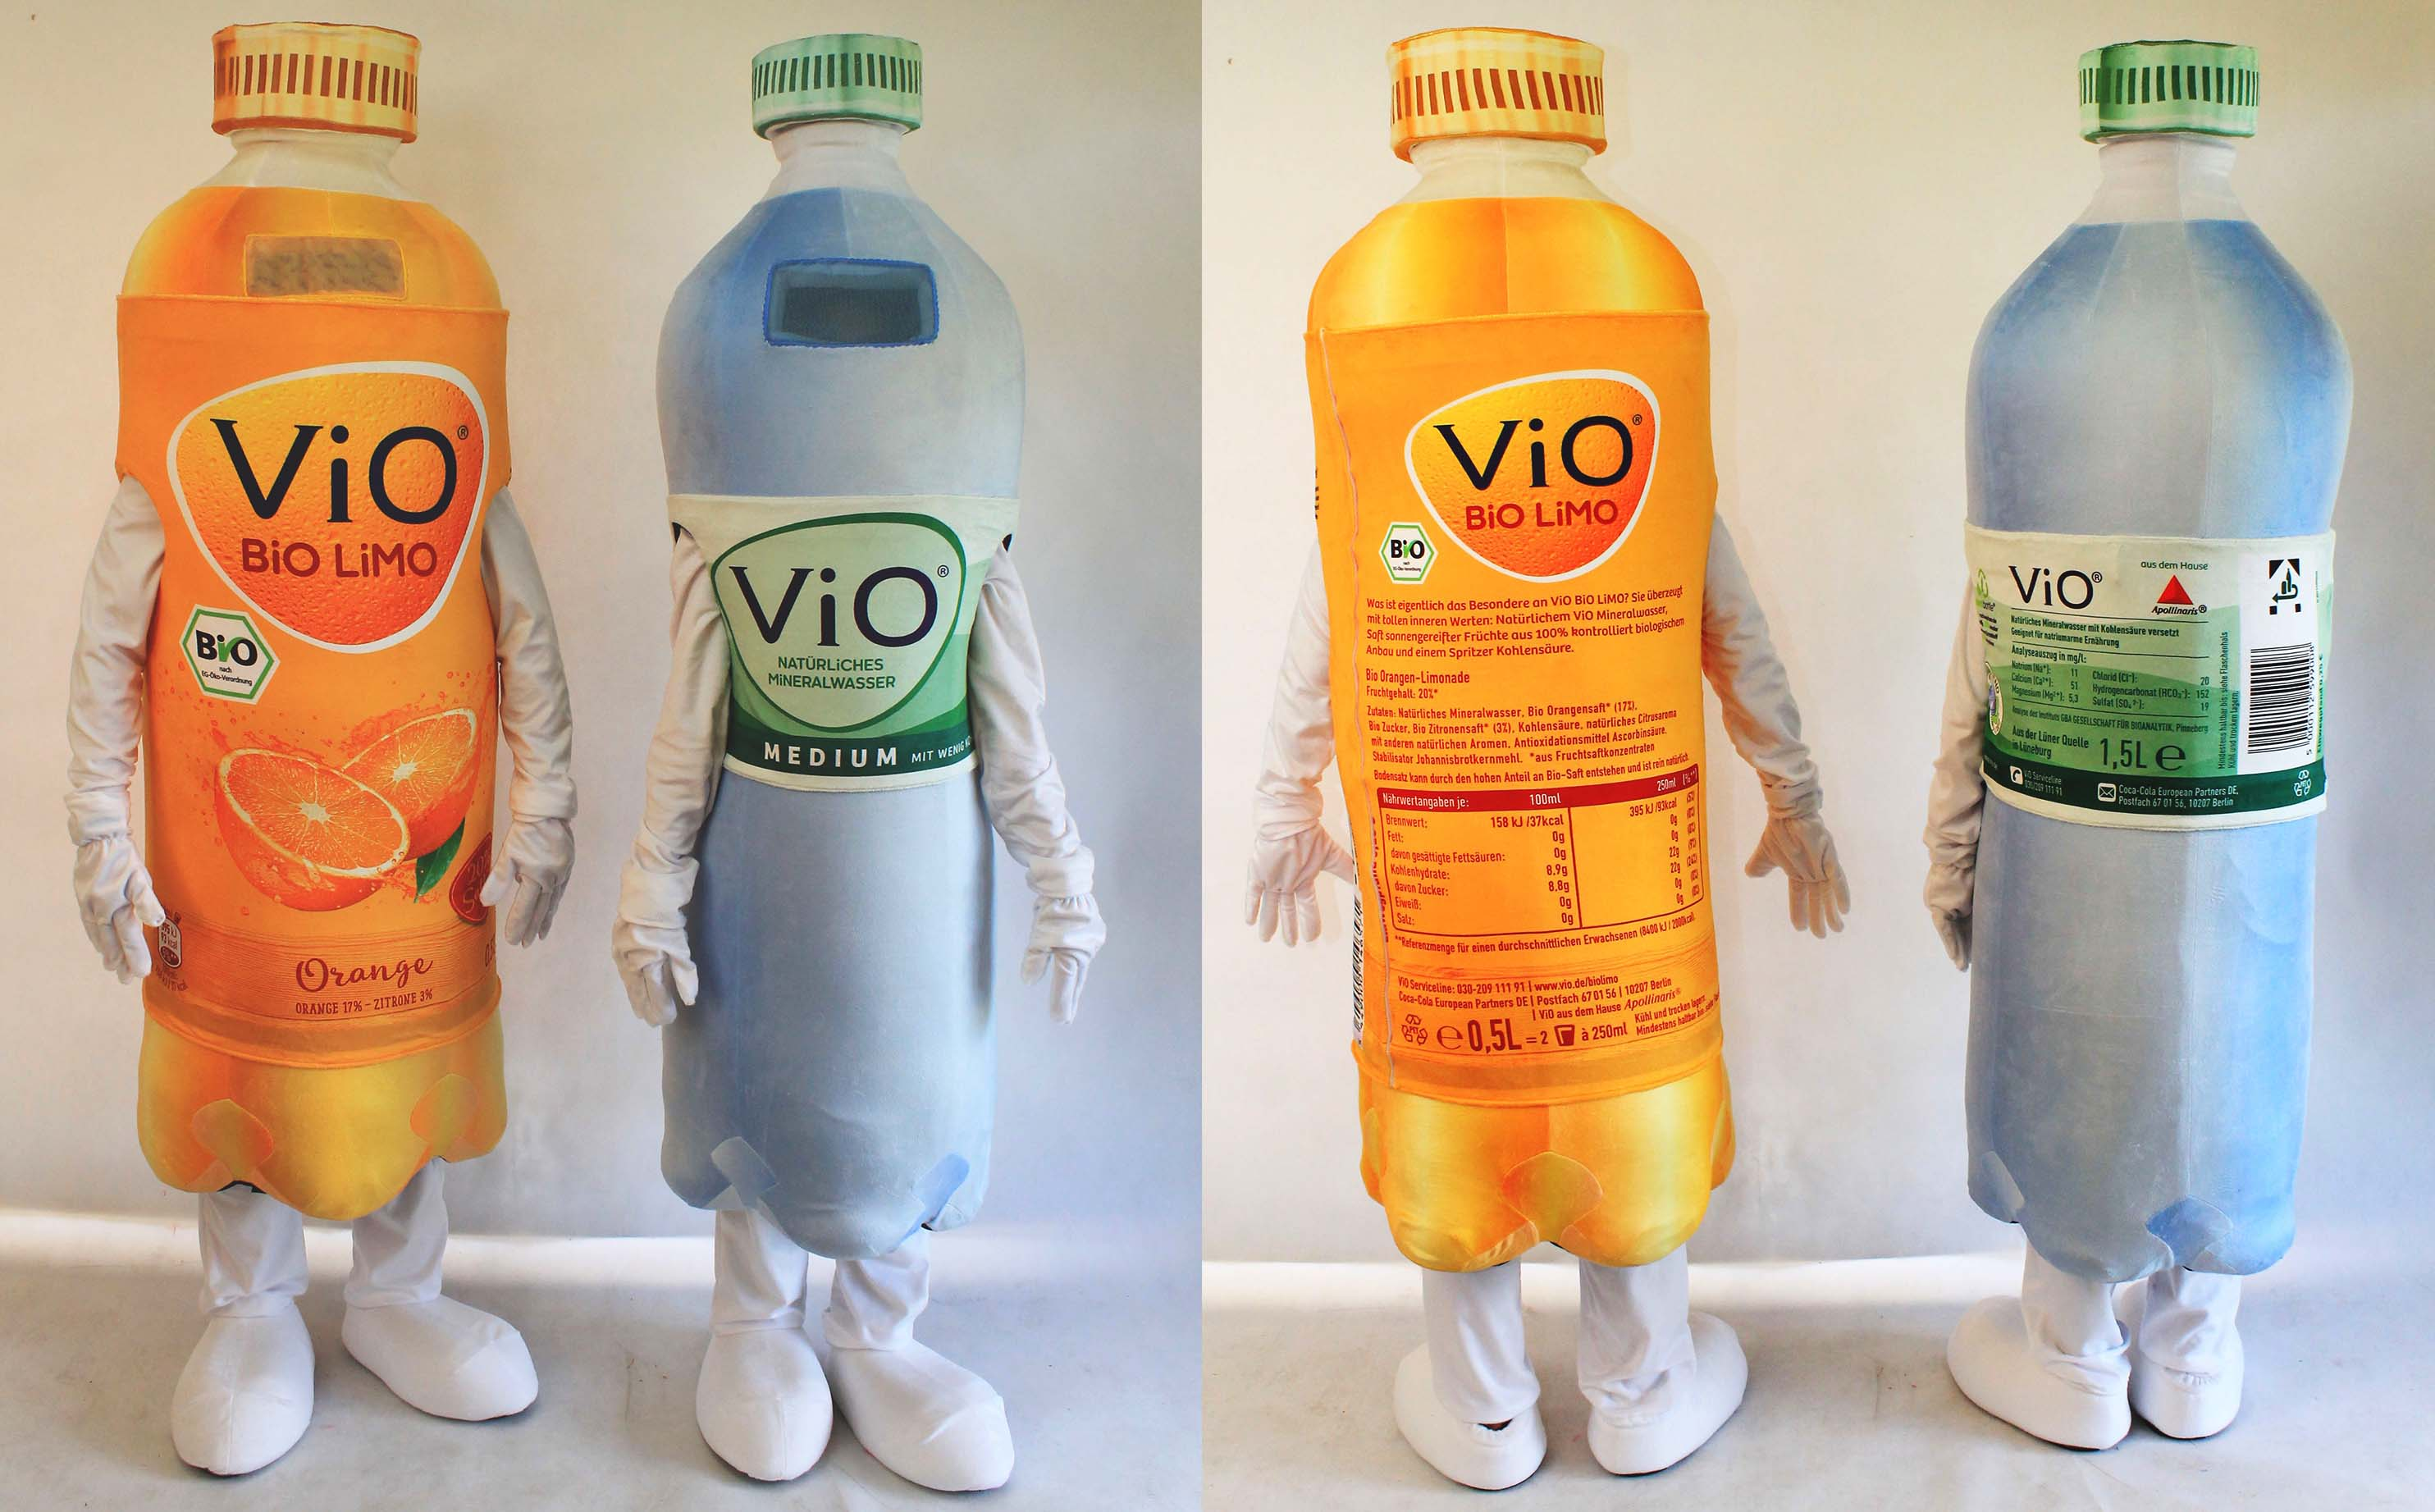 walking-act-vio-bottles